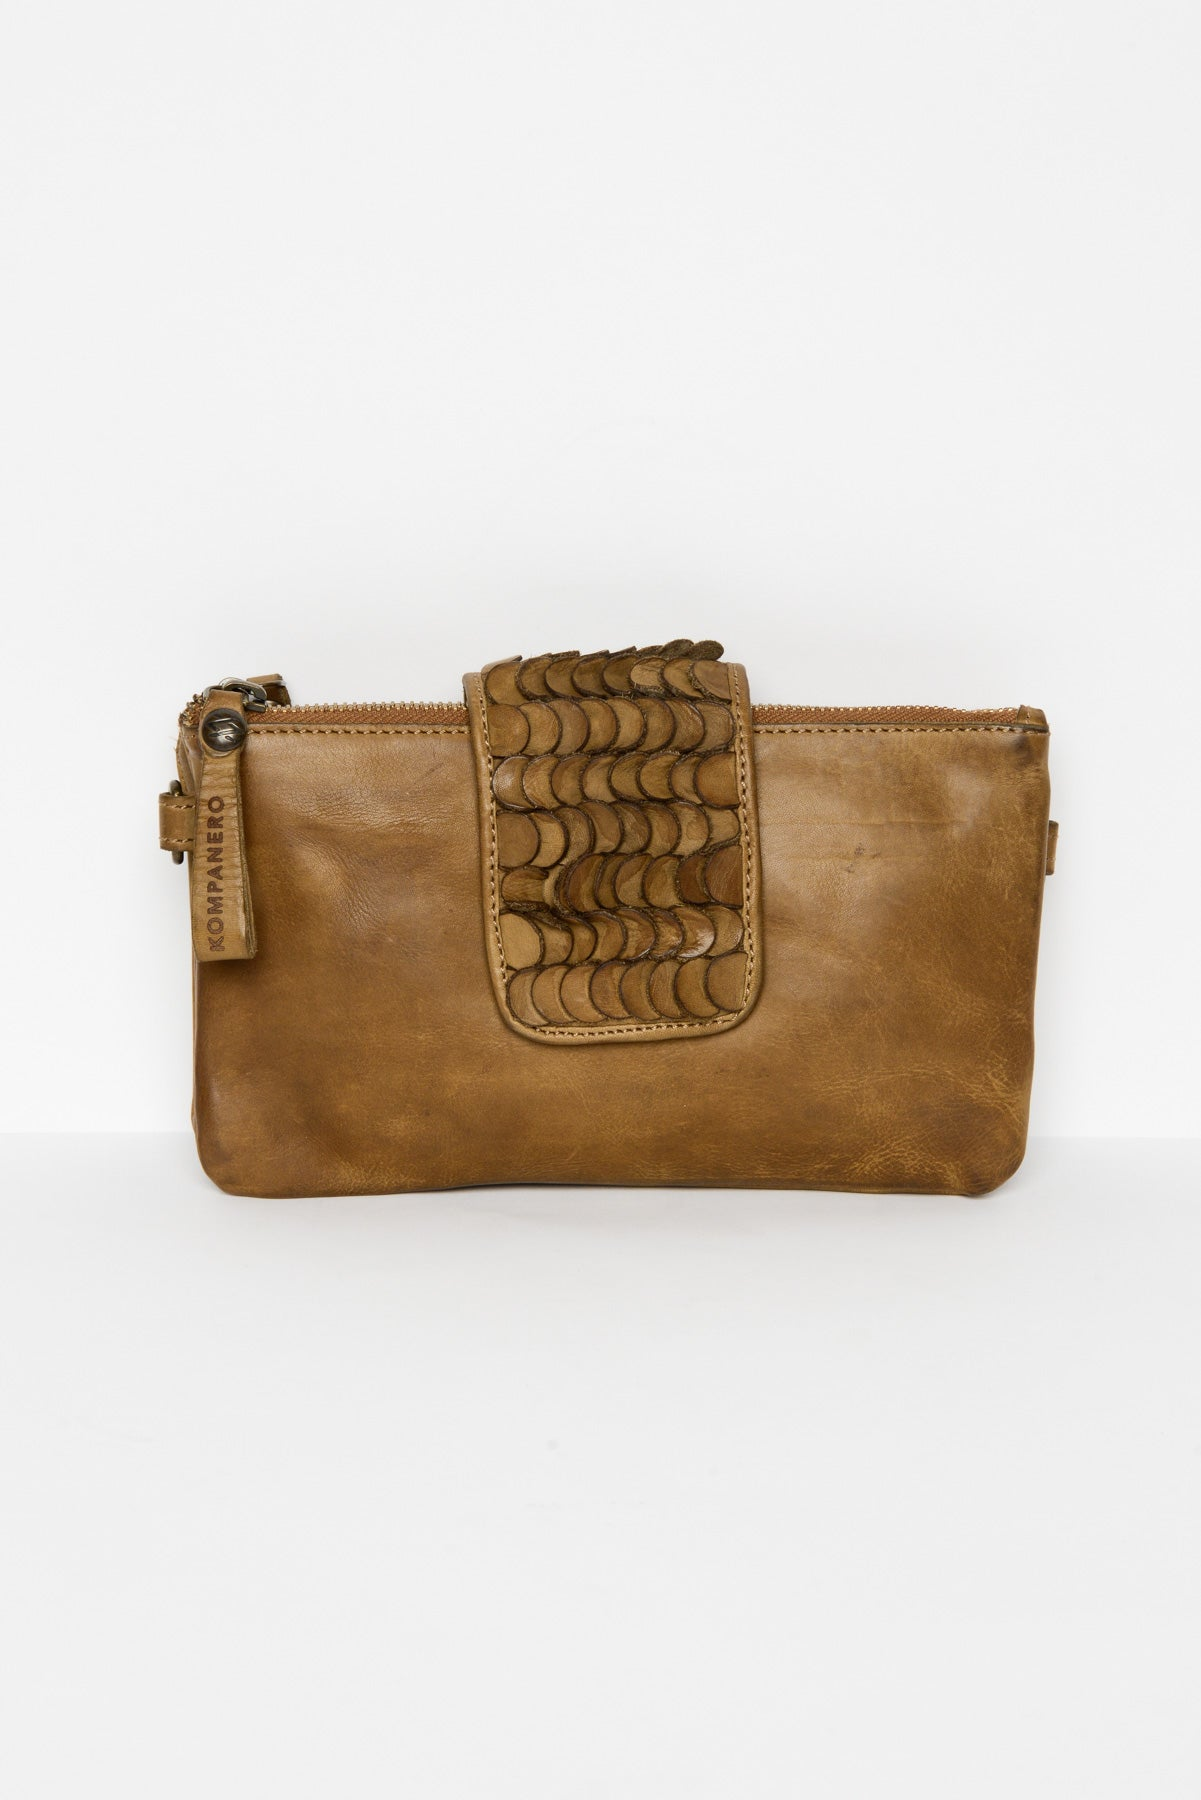 Sarah Tobacco Leather Clutch - Blue Bungalow